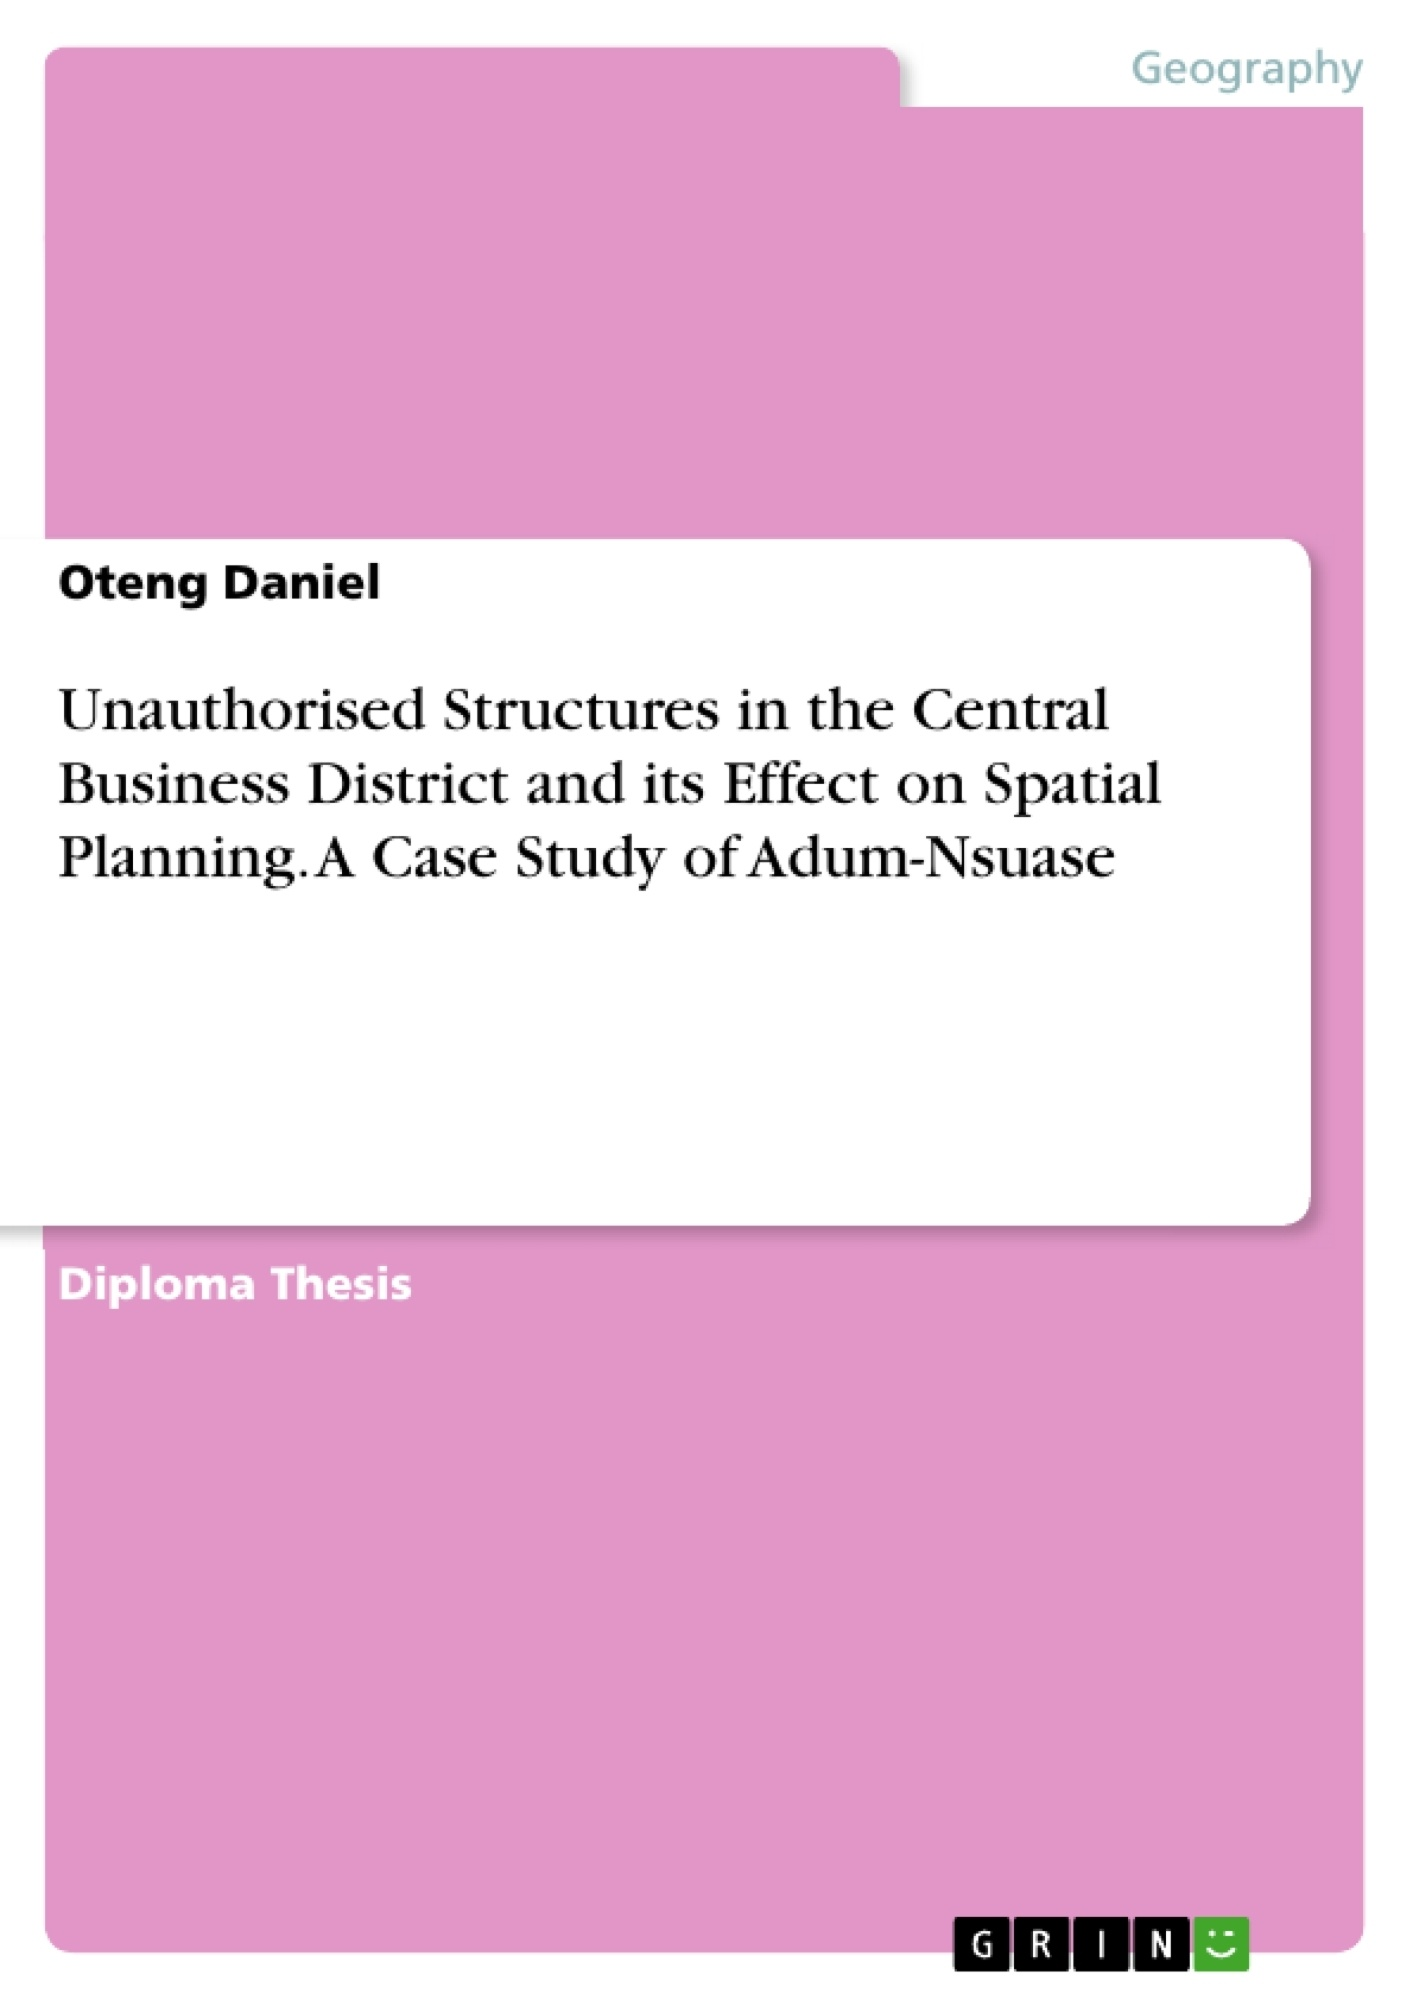 Title: Unauthorised Structures in the Central Business District and its Effect on Spatial Planning. A Case Study of Adum-Nsuase